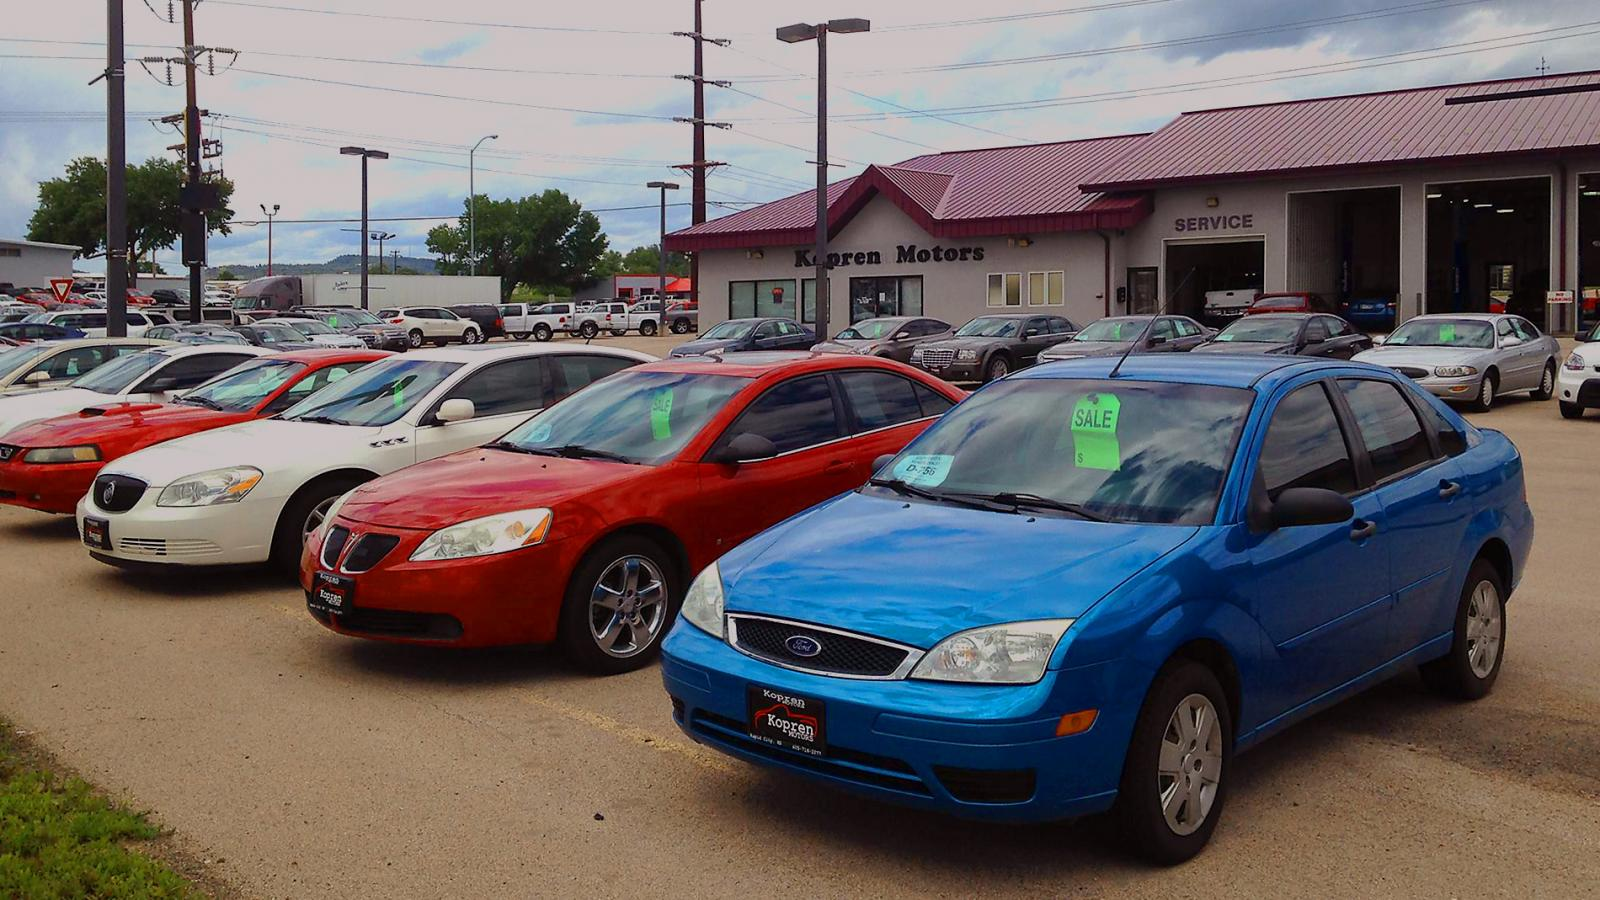 Cheap Used Cars For Sale >> Used Cars Rapid City Sd Pre Owned Autos Rapid City South